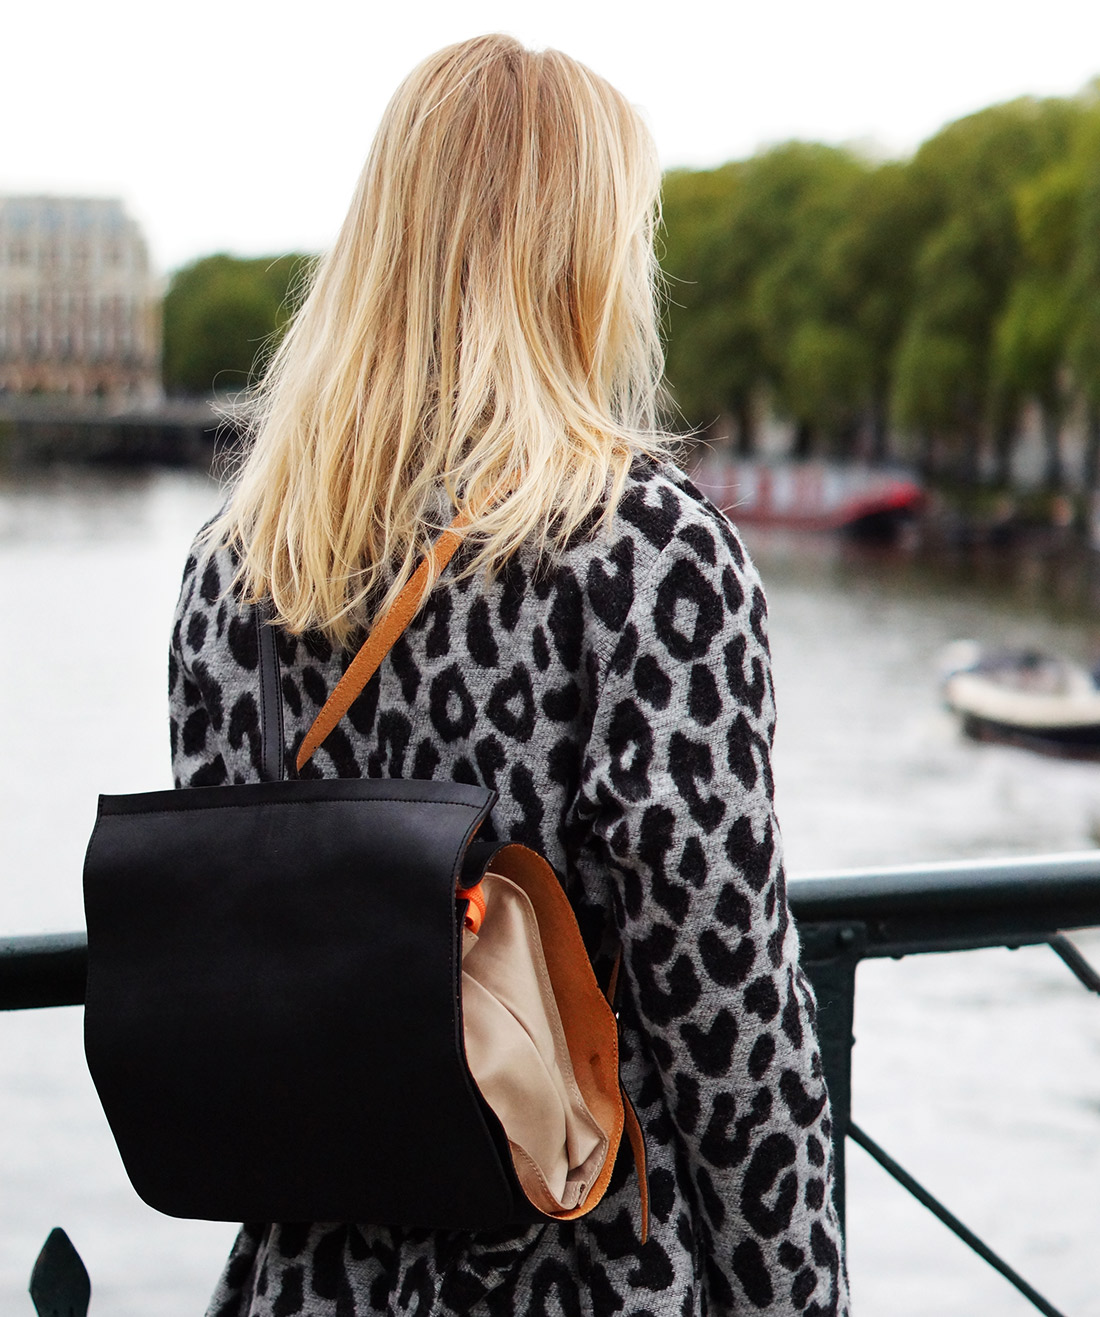 Bag-at-You---Fashion-blog---Dutch-Basics---Leather-backpack---Ana-Alcazar-cardigan---Fall-Amsterdam